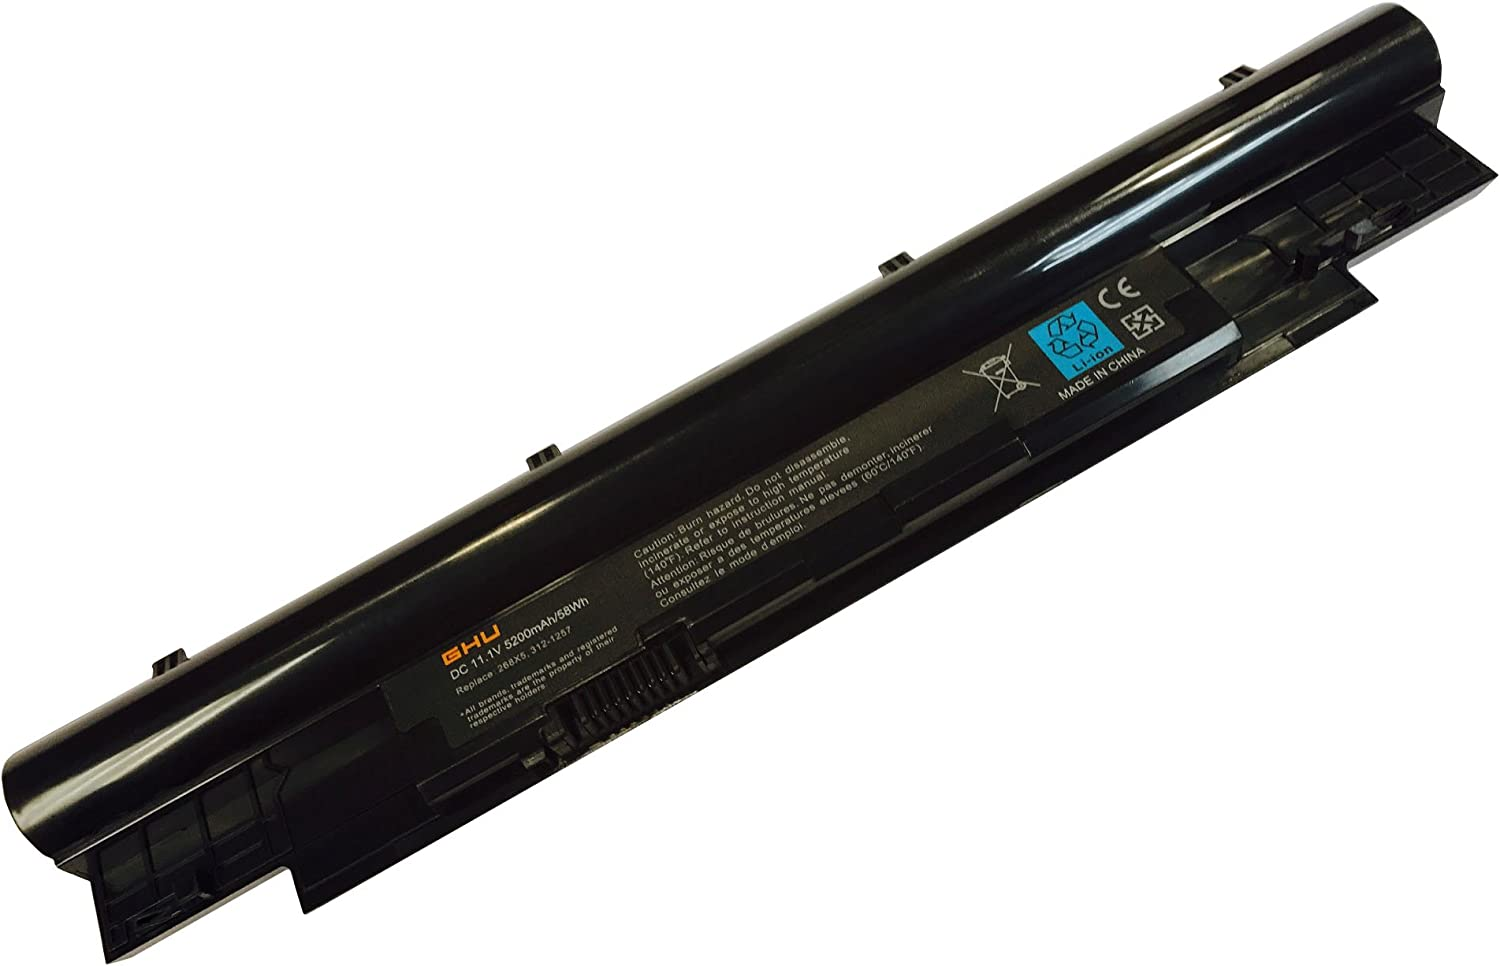 New GHU Battery 58 WH Replacement for 268X5 0268x5 Compatible with Dell Latitude 3330 inspiron 13z N311z 14Z N411z Vostro V131 V131D V131R 312-1257 312-1258 H2XW1 H7XW1 JD41Y N2DN5